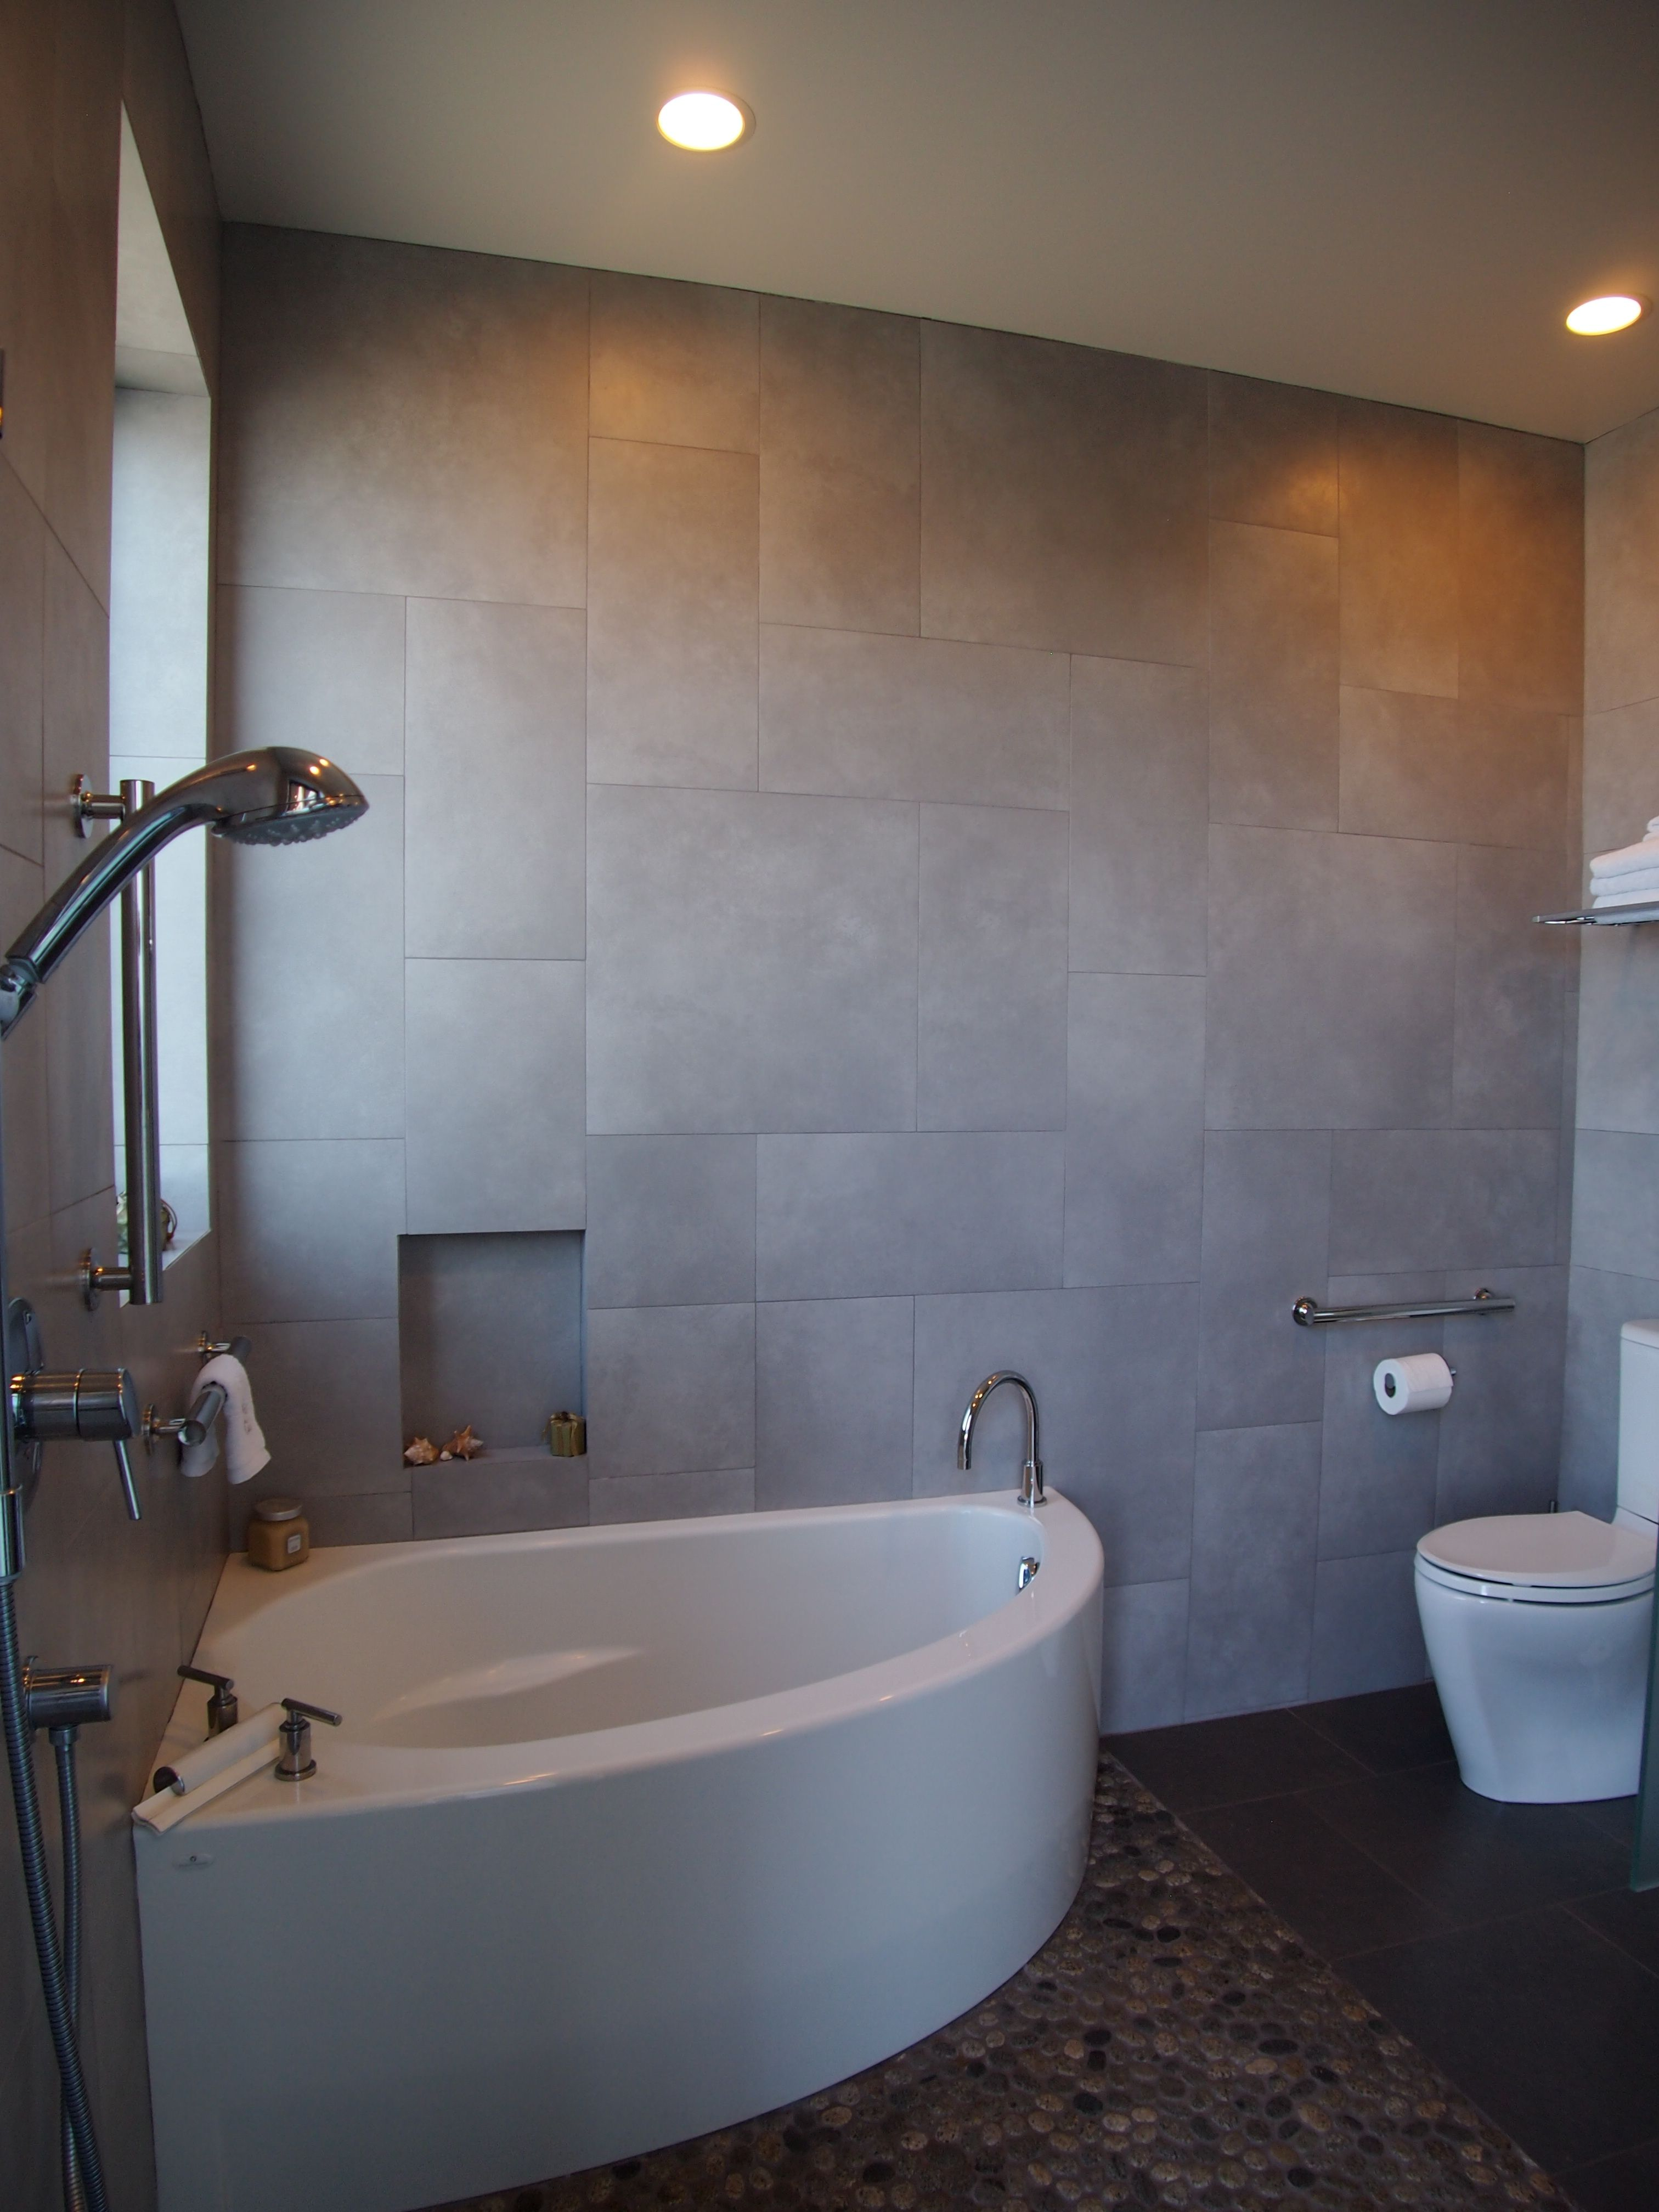 A Small Corner Soaking Tub Shares A Compact Wet Room With A Shower And Toilet Corner Soaking Tub Modern Master Bathroom Soaking Tub Shower Combo